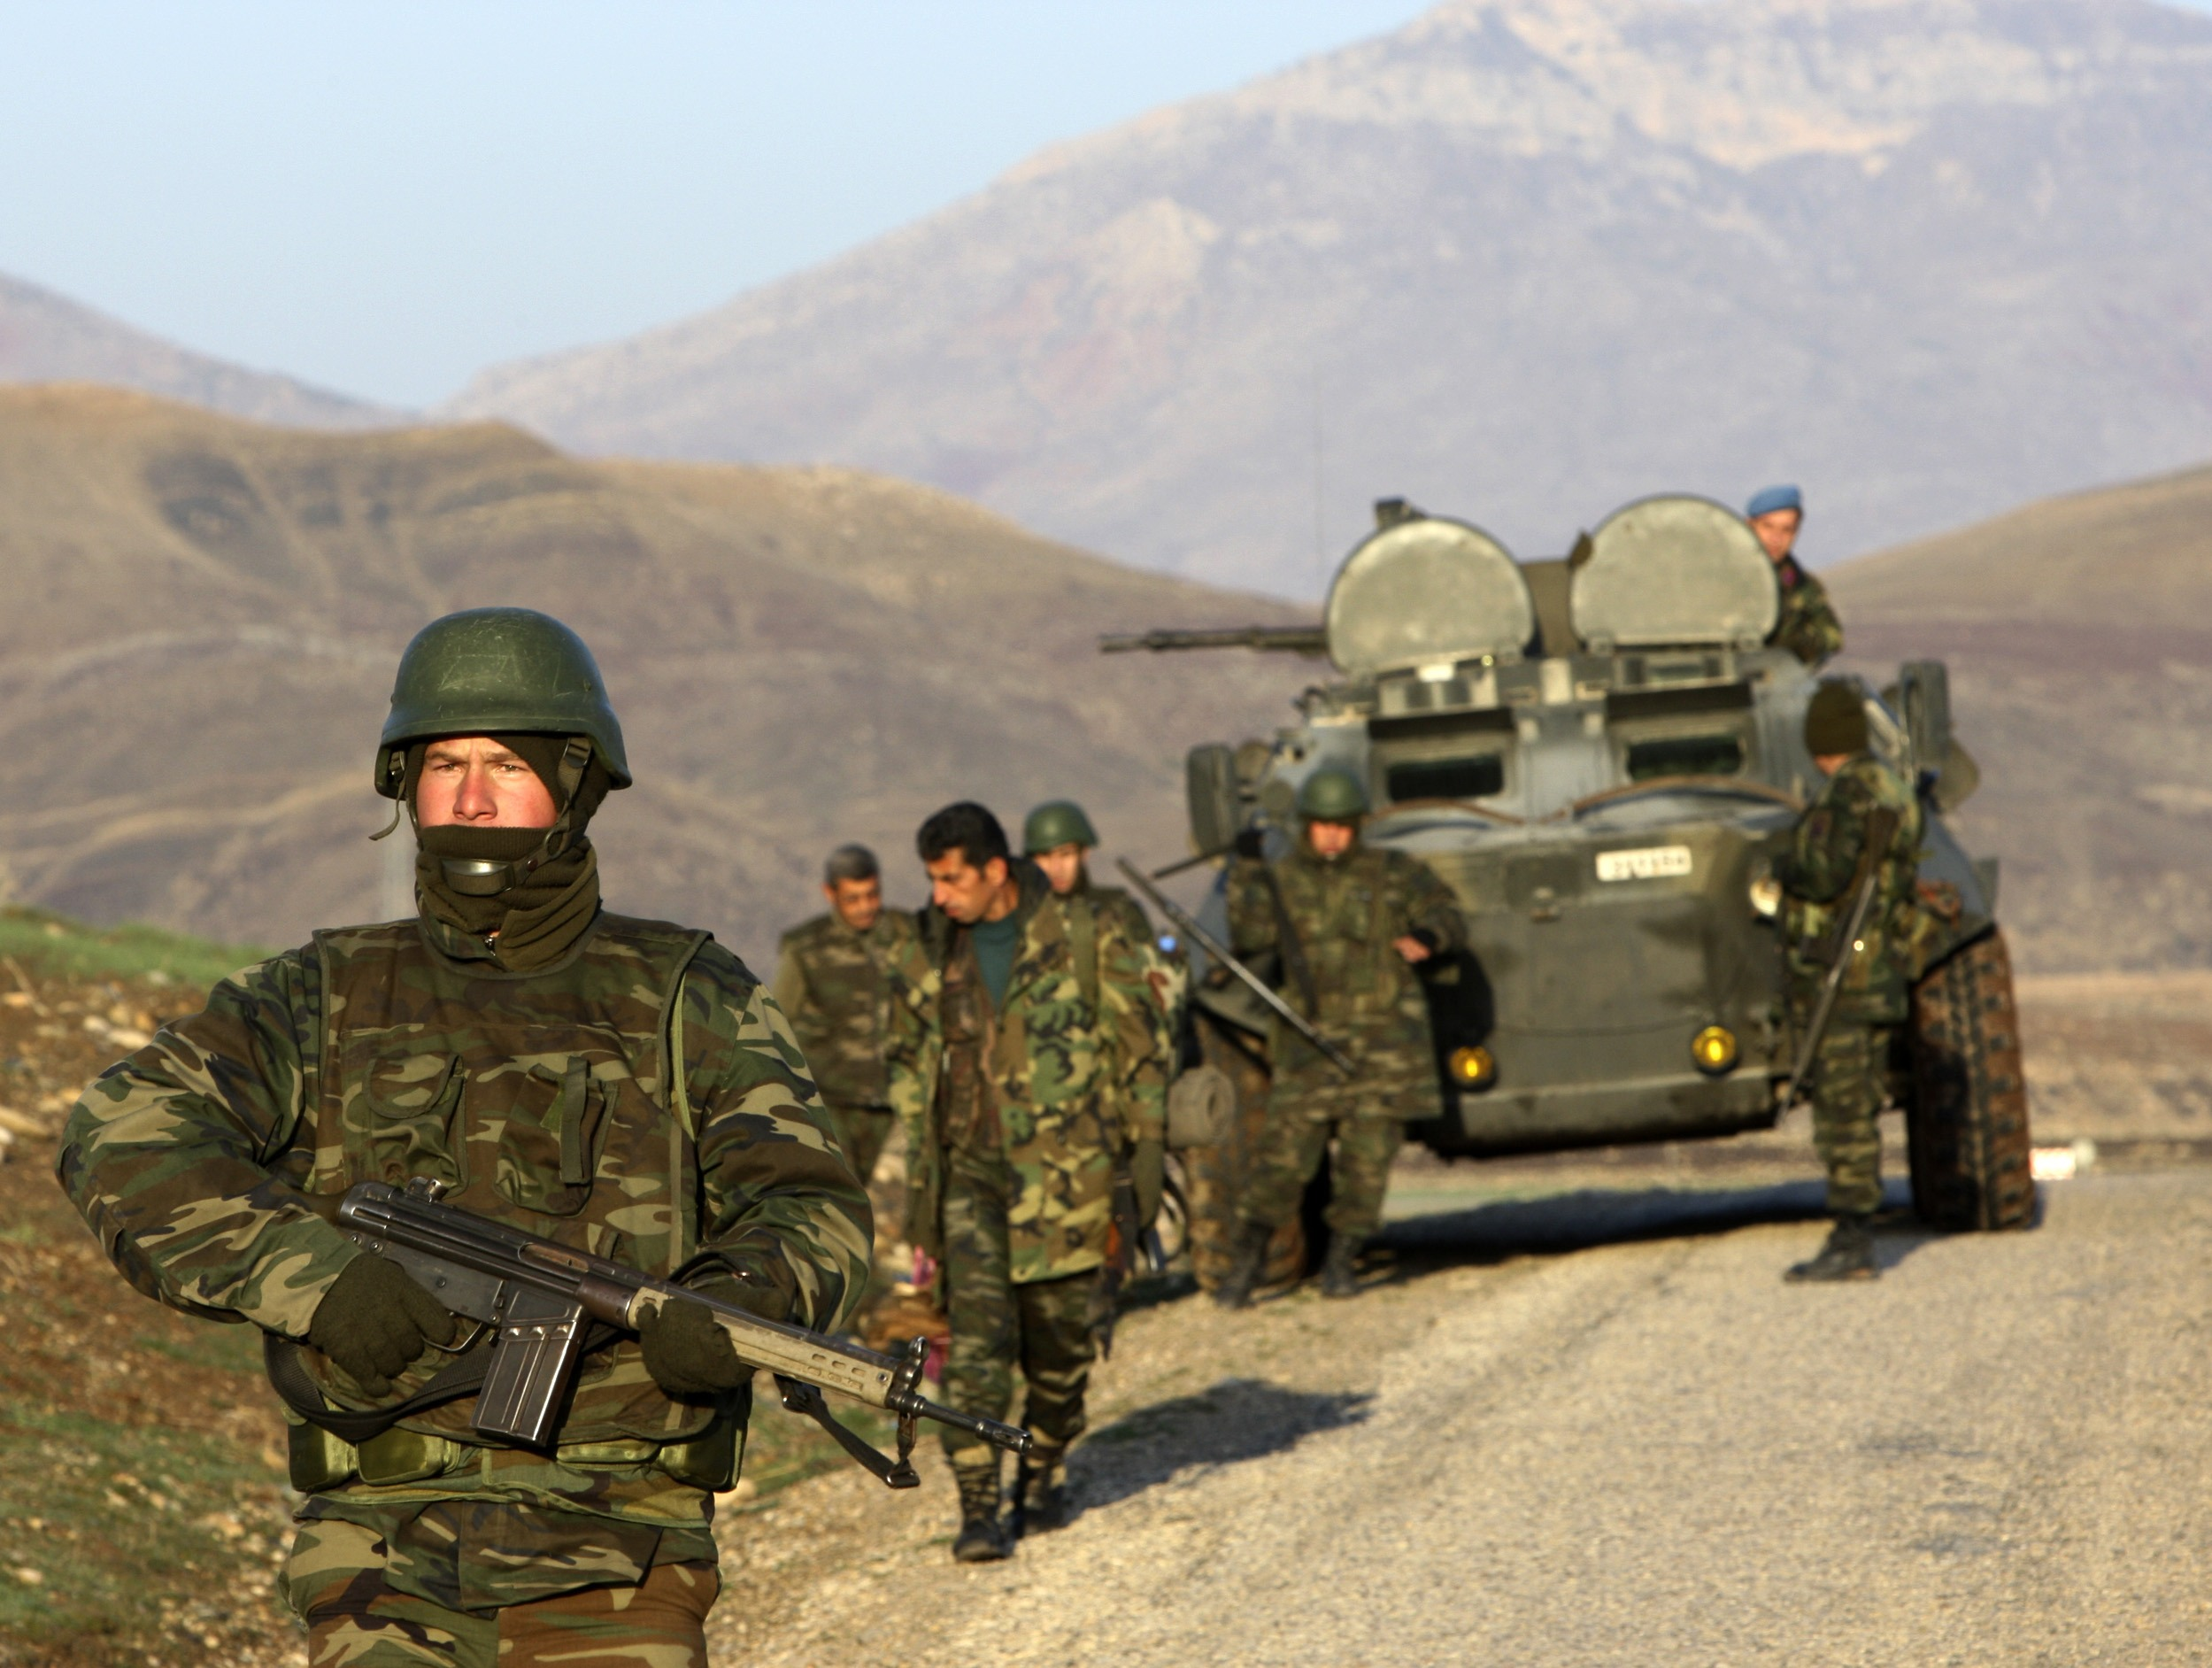 Turkish soldiers search for roadside mines in a rugged area in the Turkish province of Sirnak, bordering Iraq on Thursday.